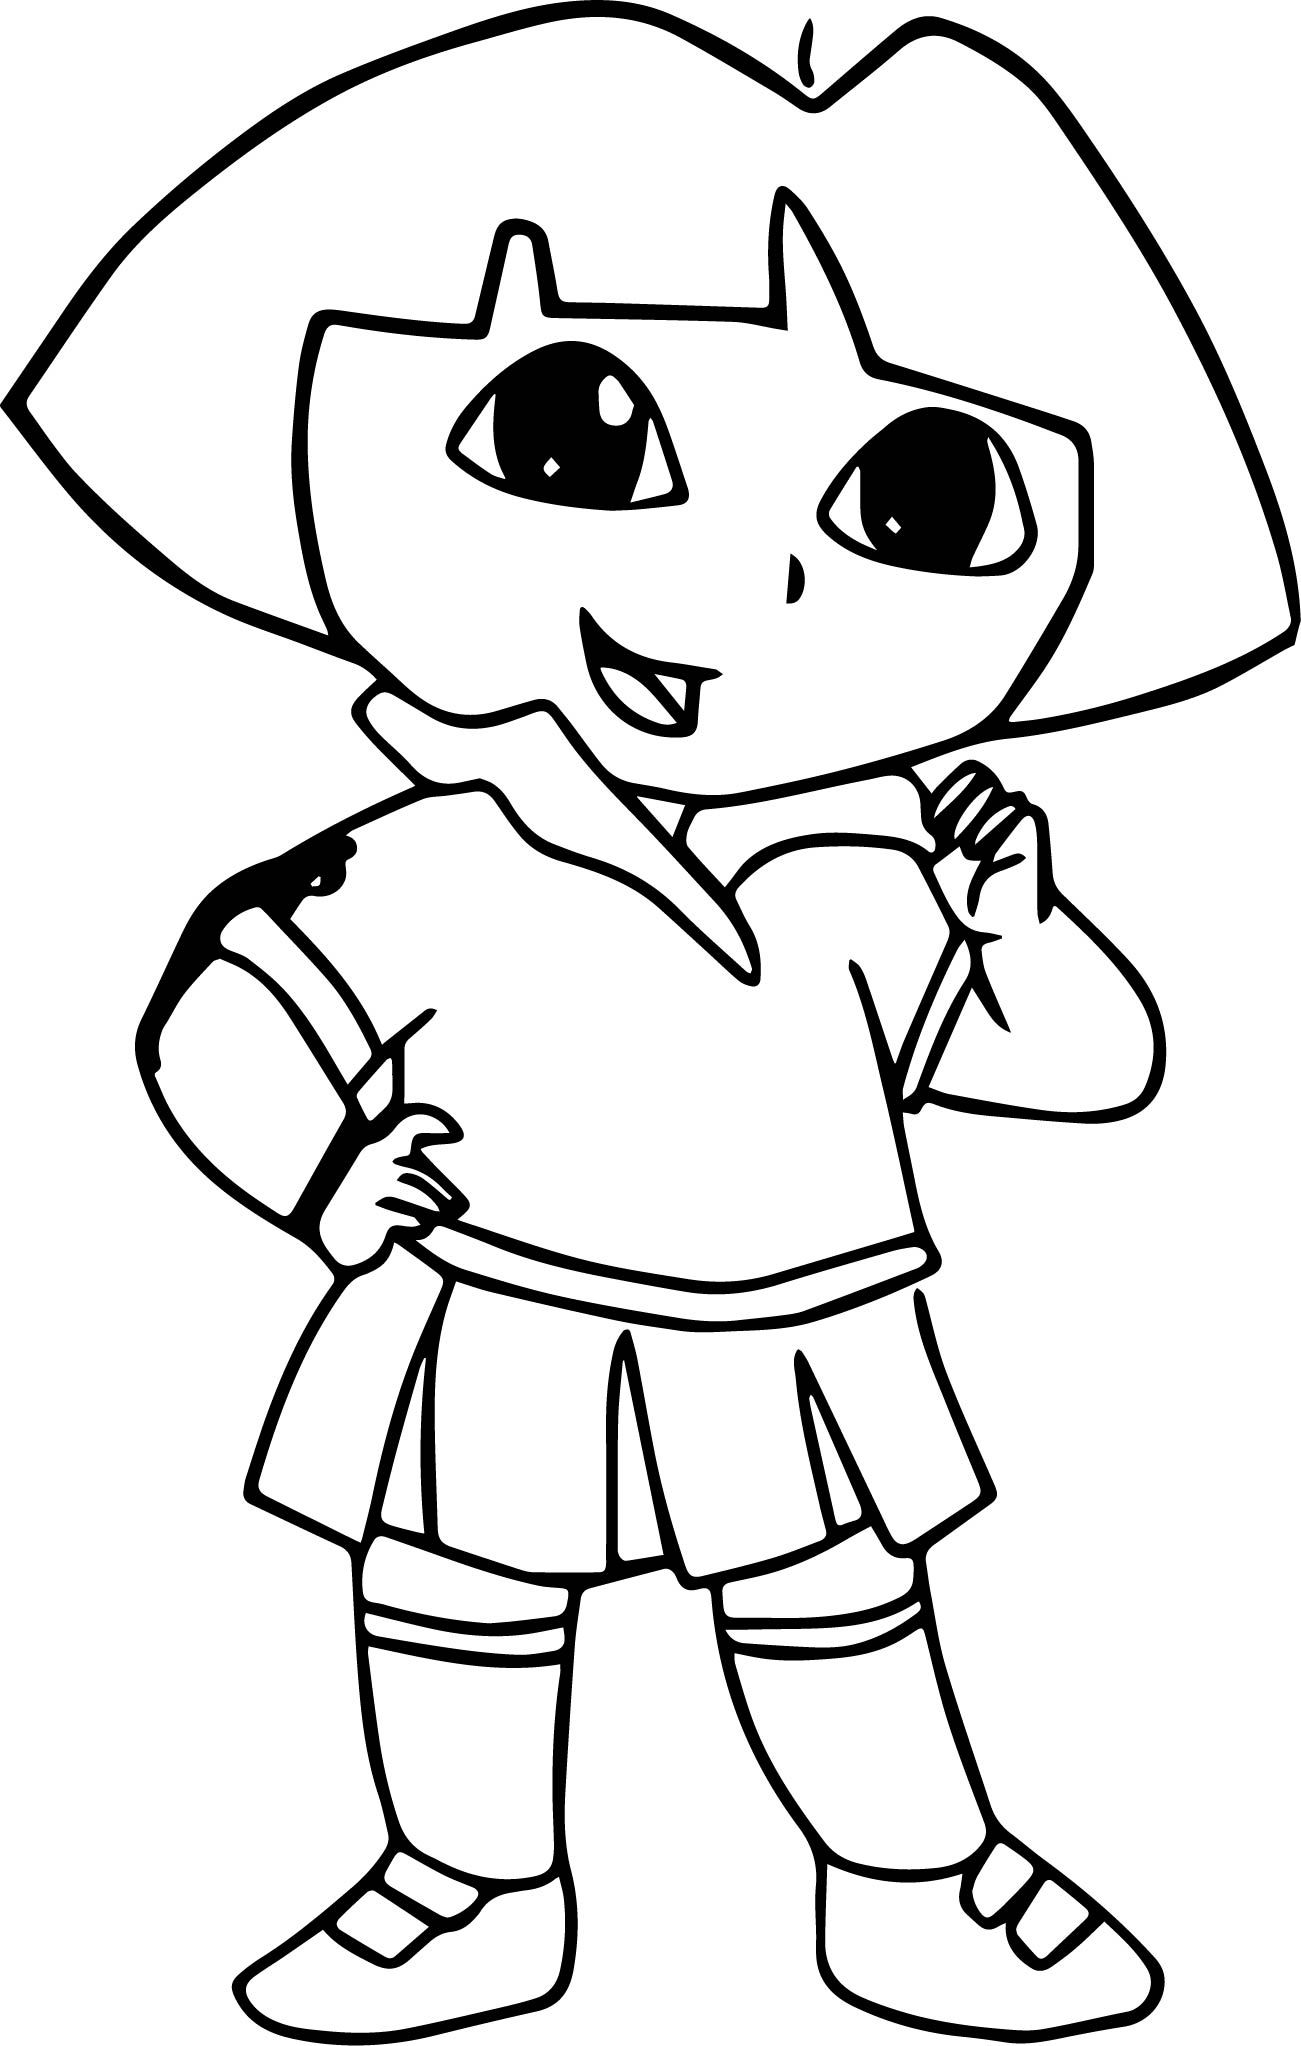 Nice Draw Dora The Explorer Picture Coloring Page